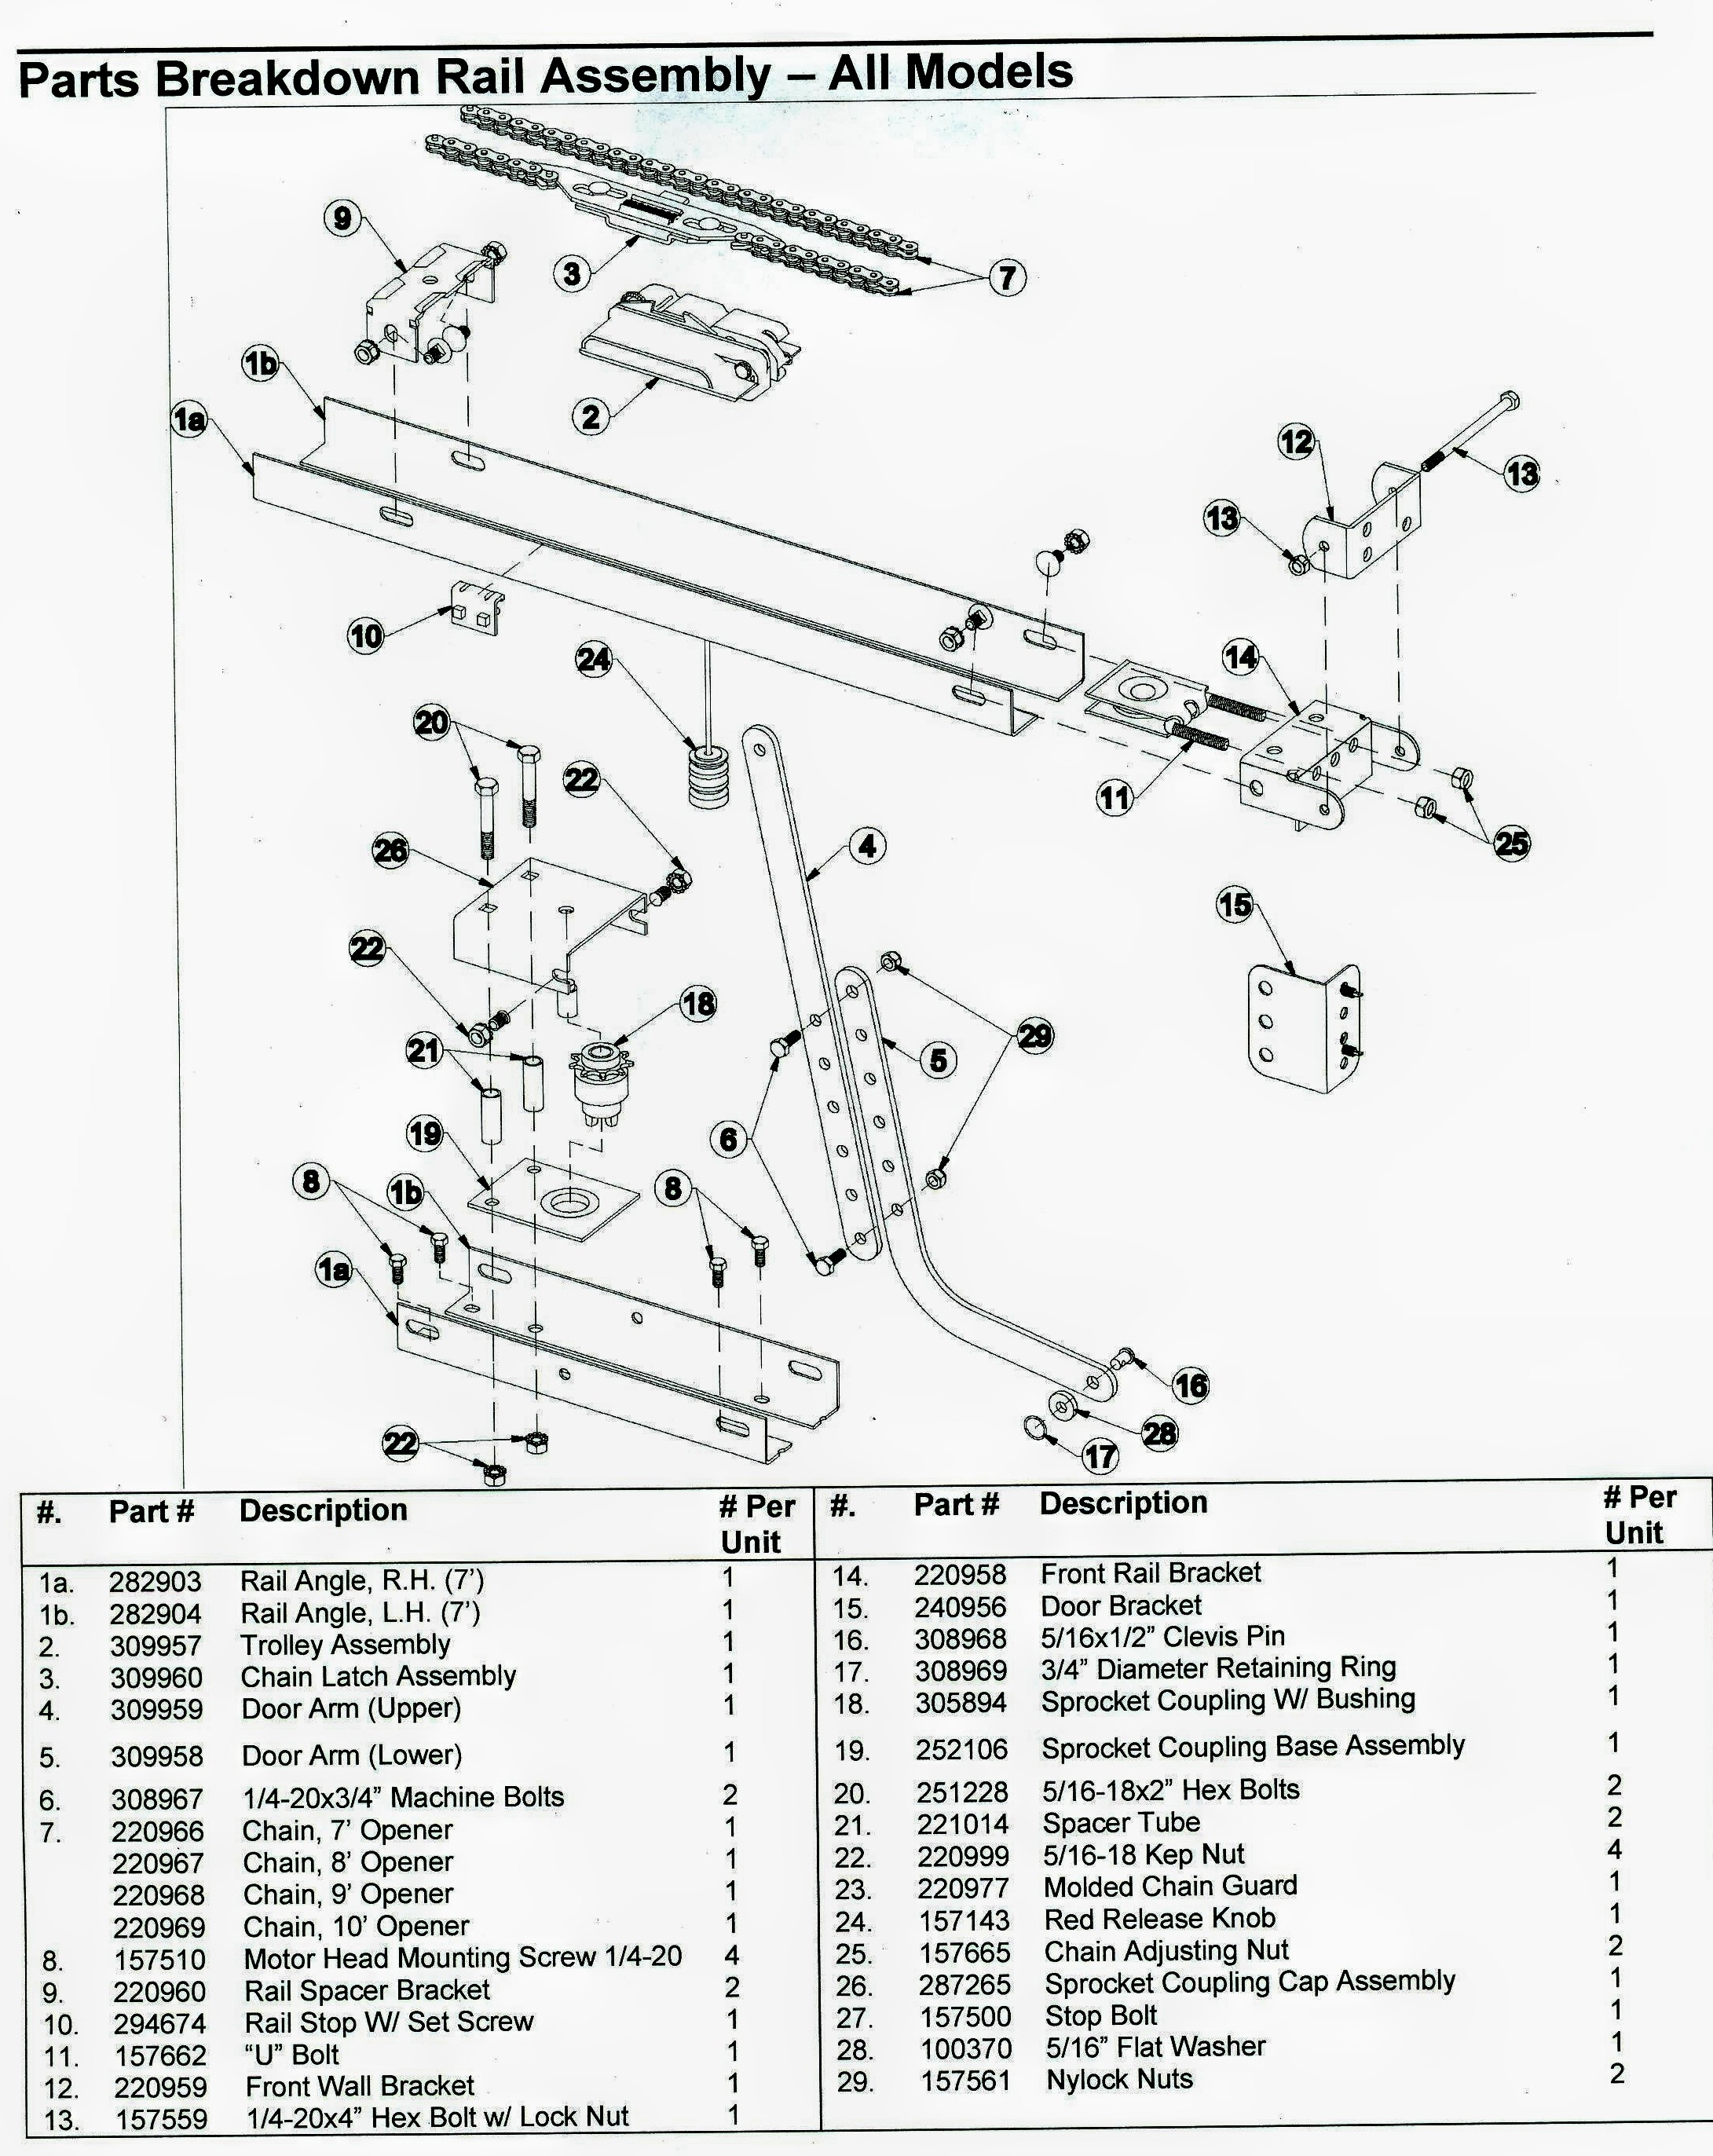 wiring diagram for liftmaster garage door opener wiring diagram throughout liftmaster garage door opener parts diagram wiring diagram for liftmaster garage door opener wiring diagram garage door opener wiring diagram at gsmx.co